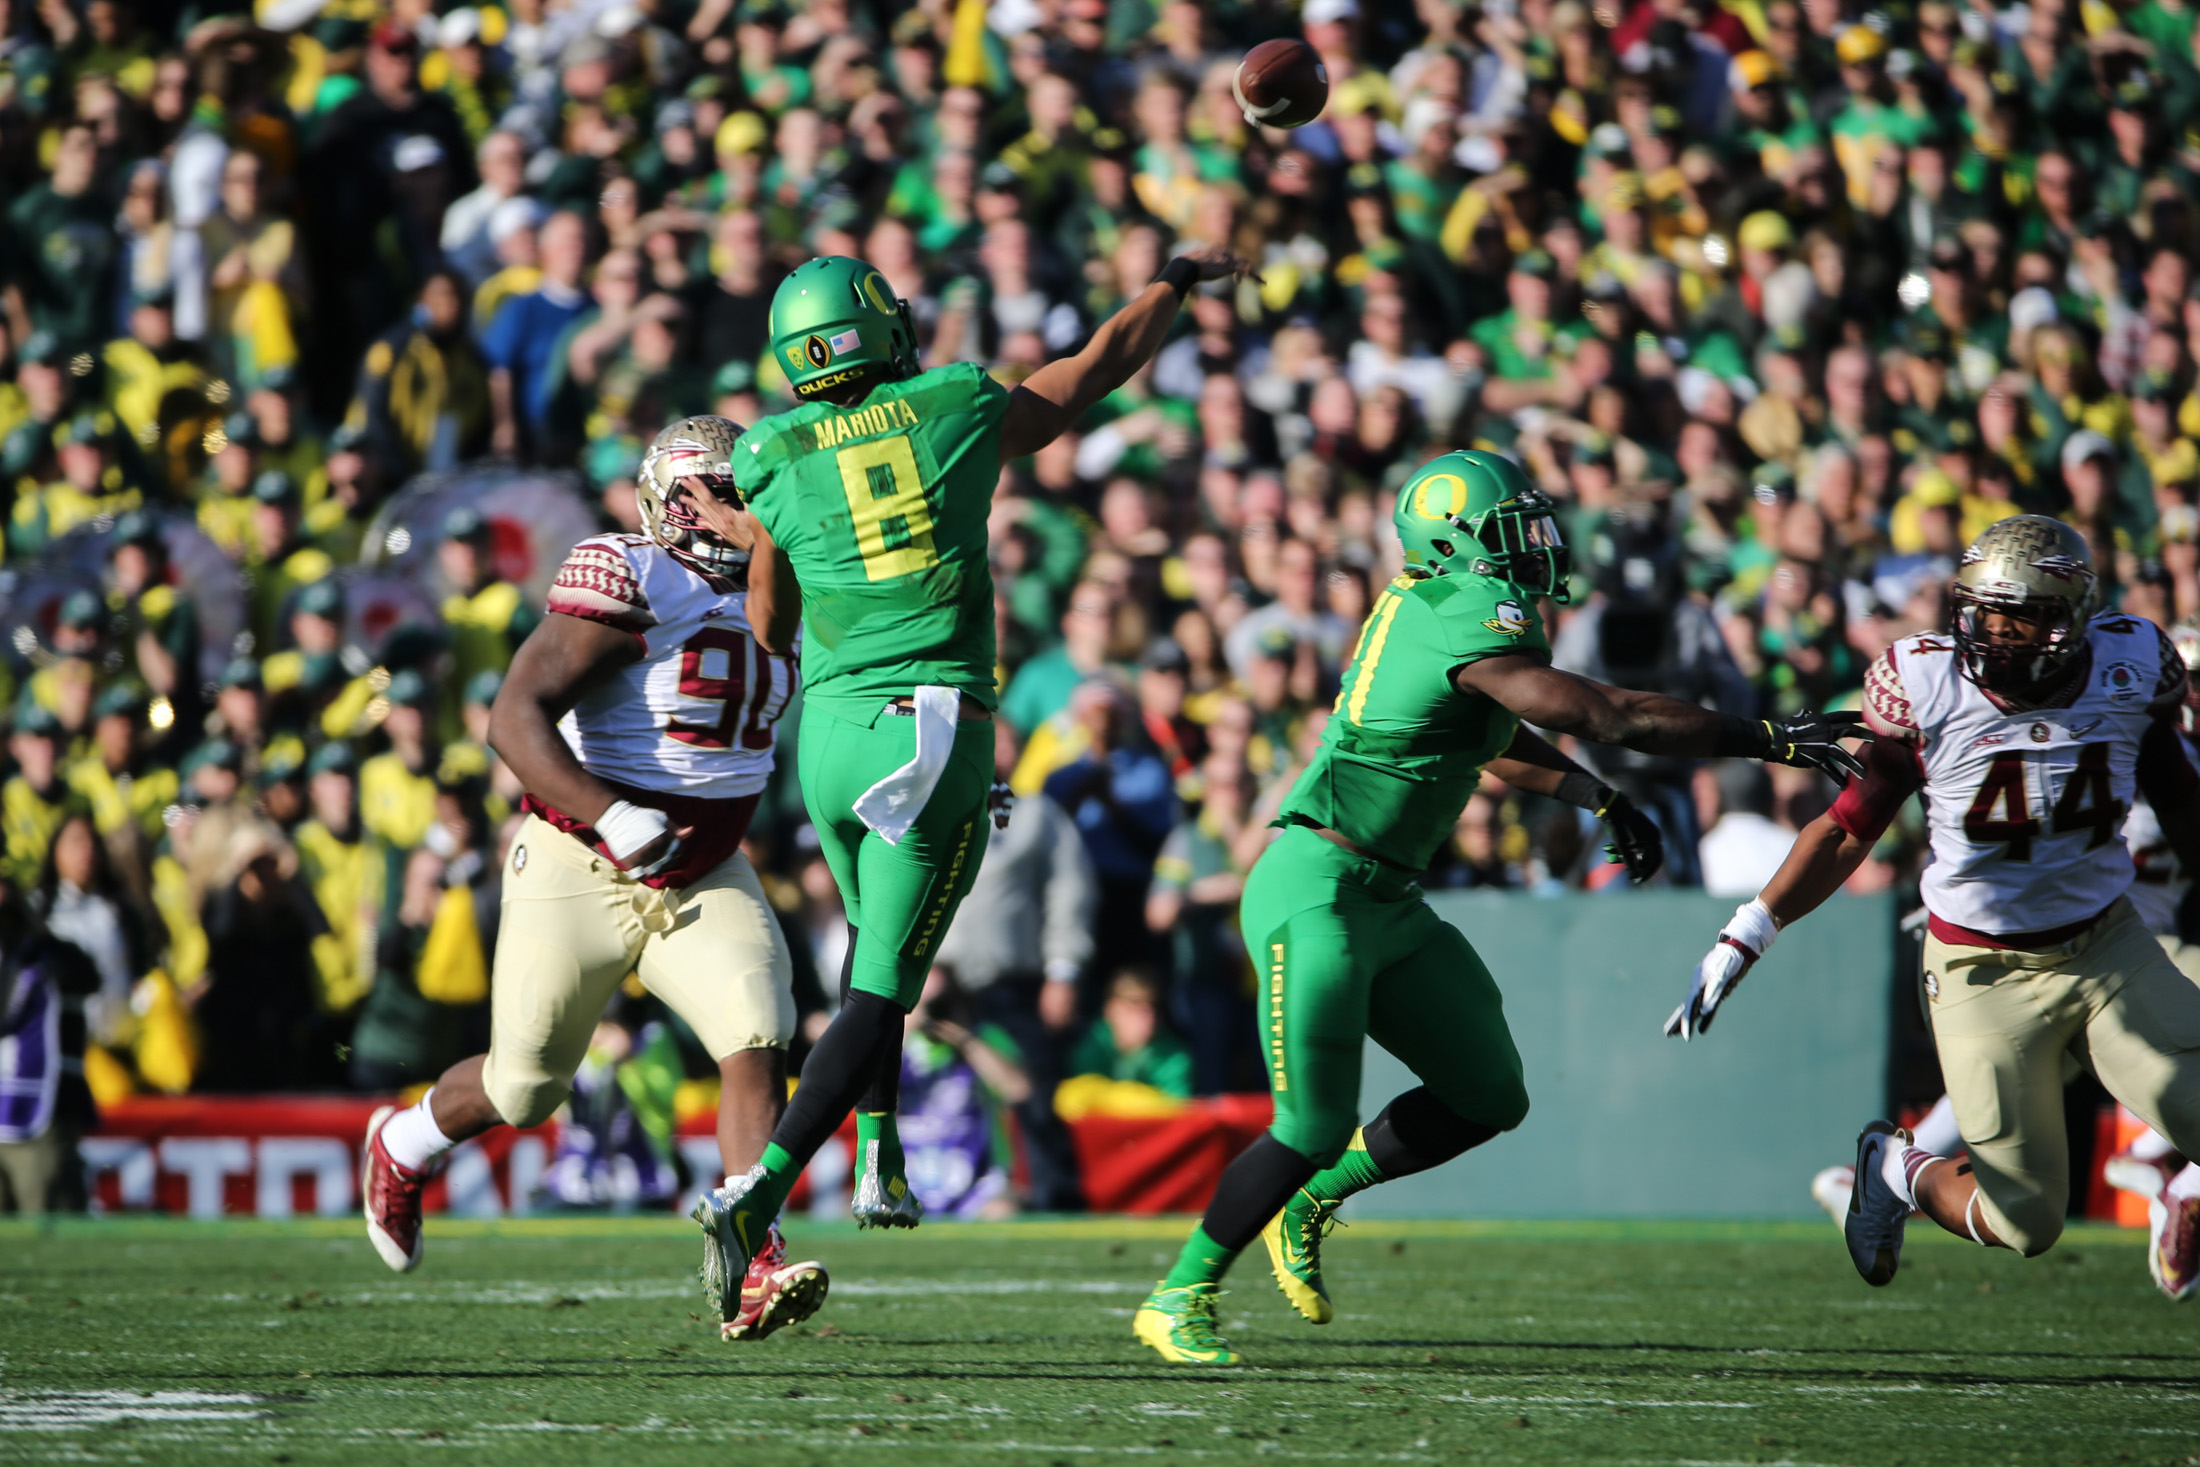 Florida State vs Oregon Ducks at the Rose Bowl in College Football Playoff - Marcus Mariota